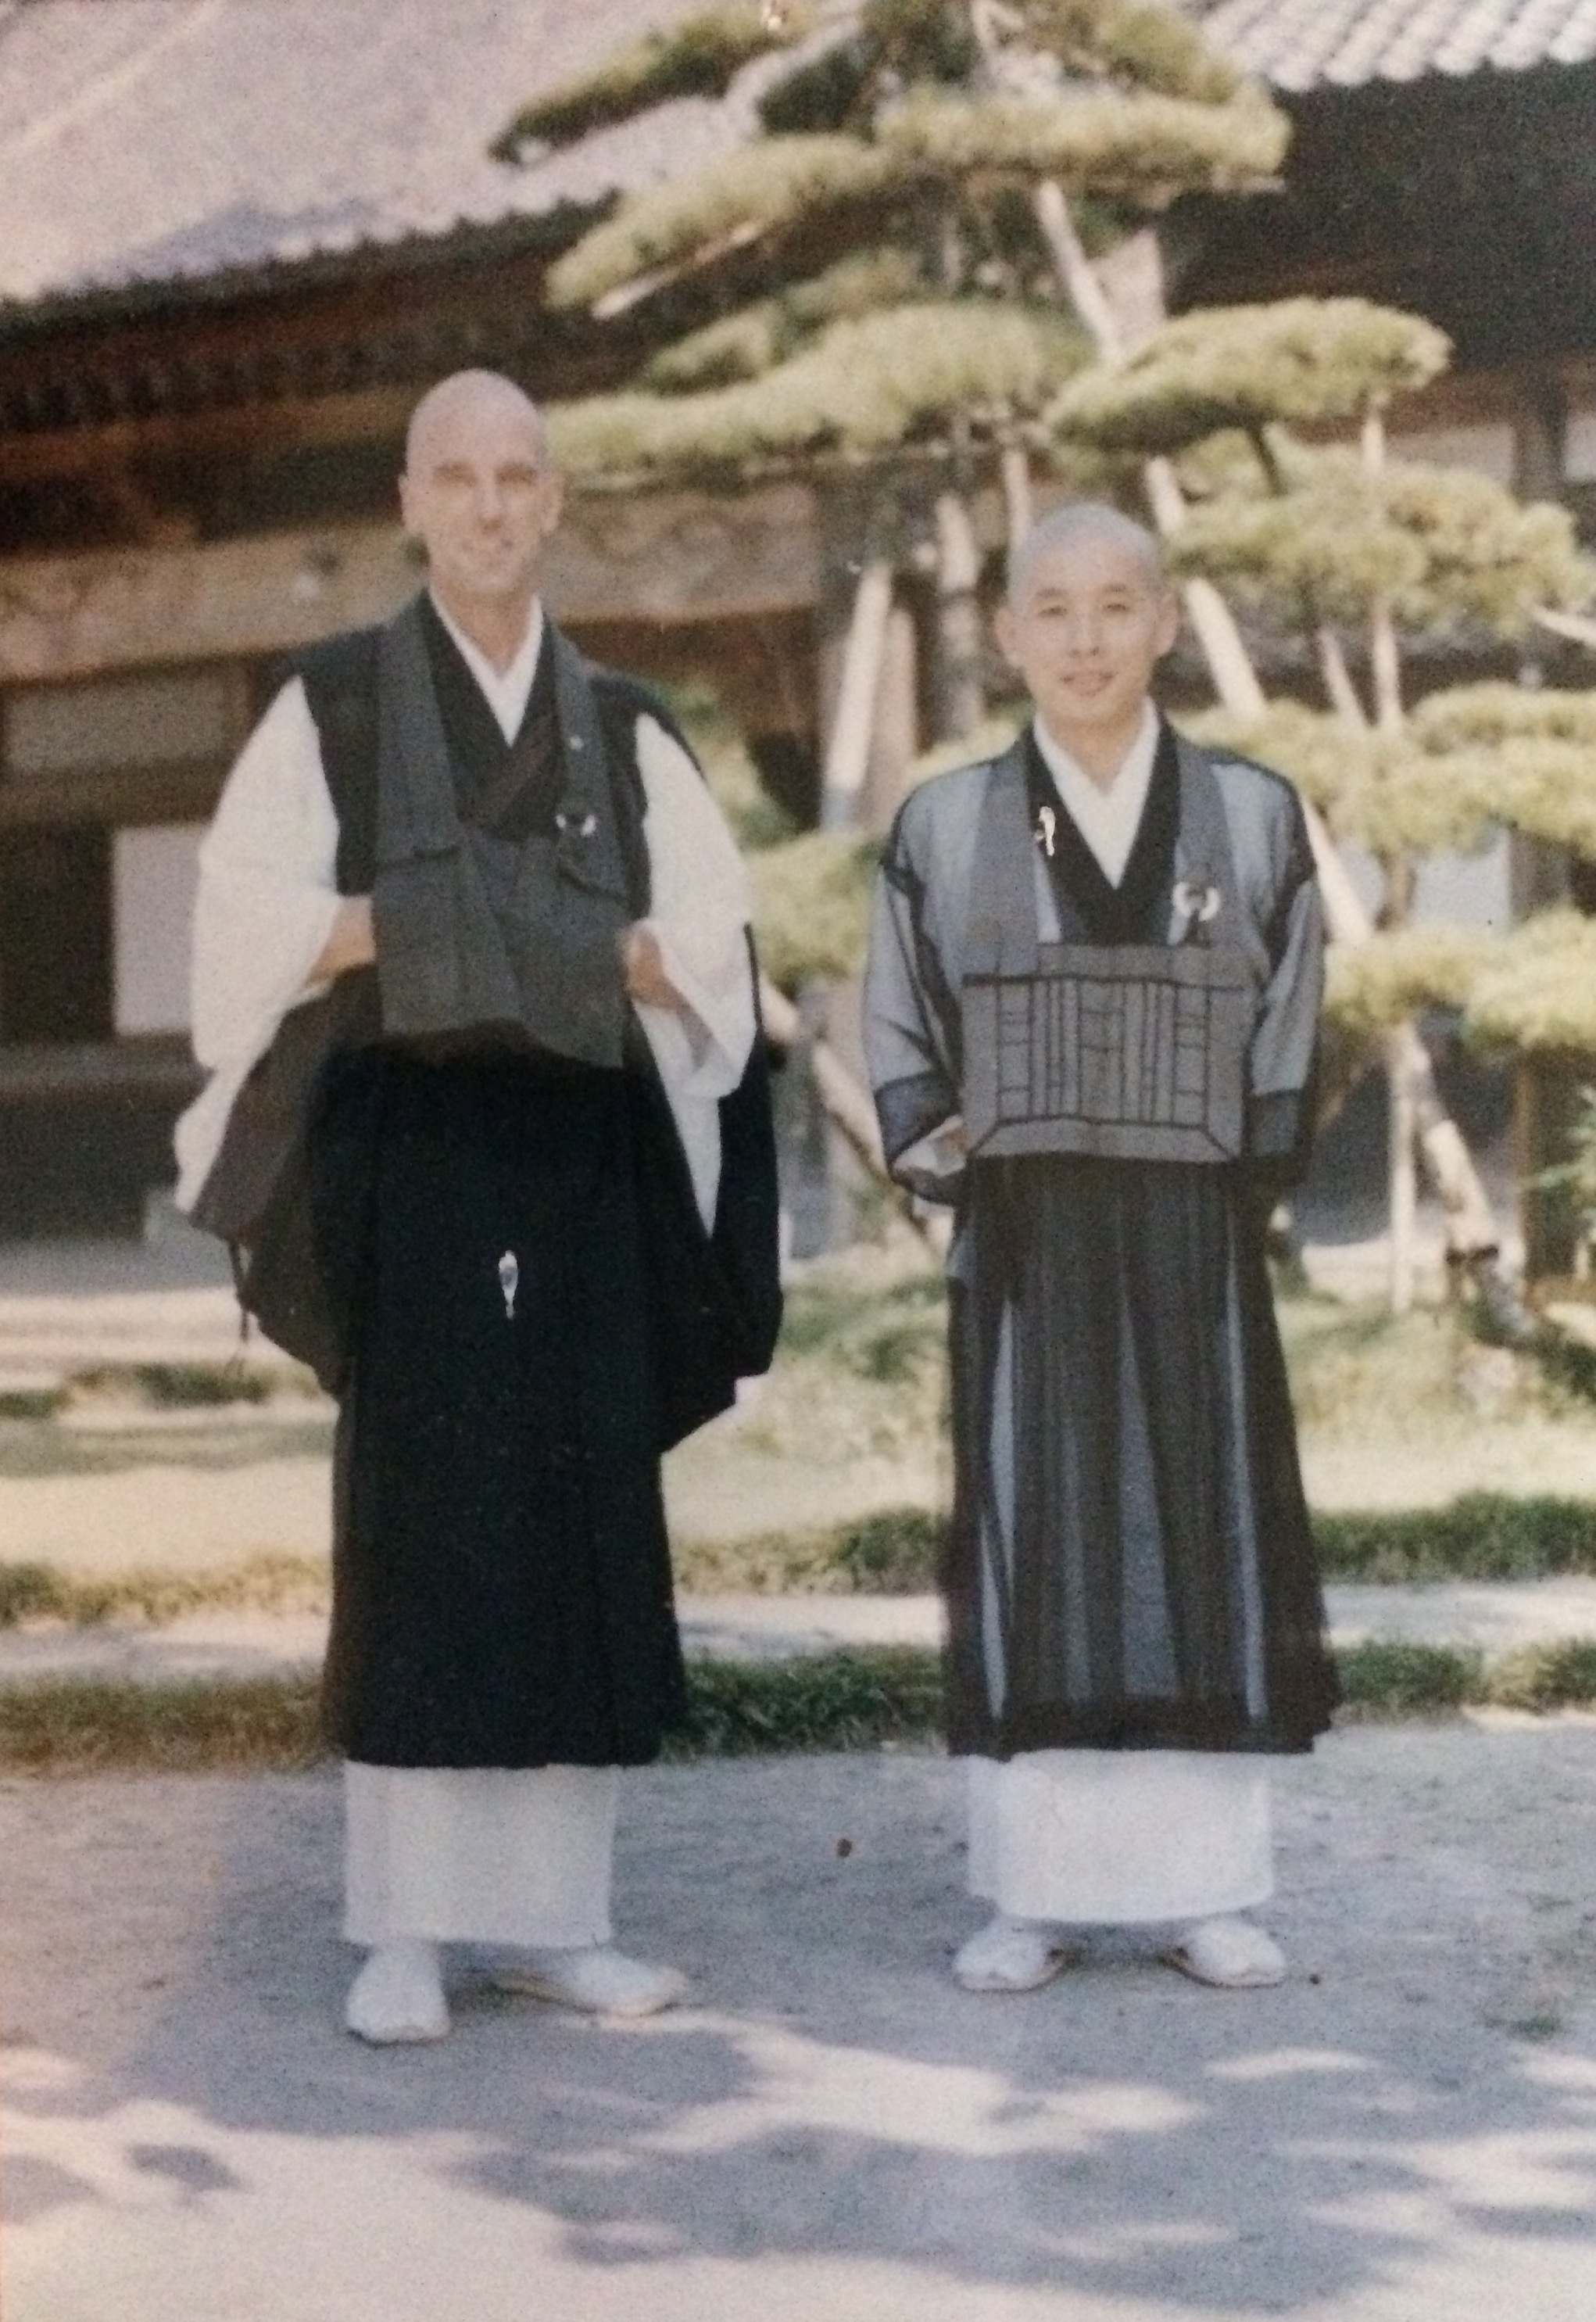 Jim Goodhue (left), and a priest in Japan in the early 1970s.